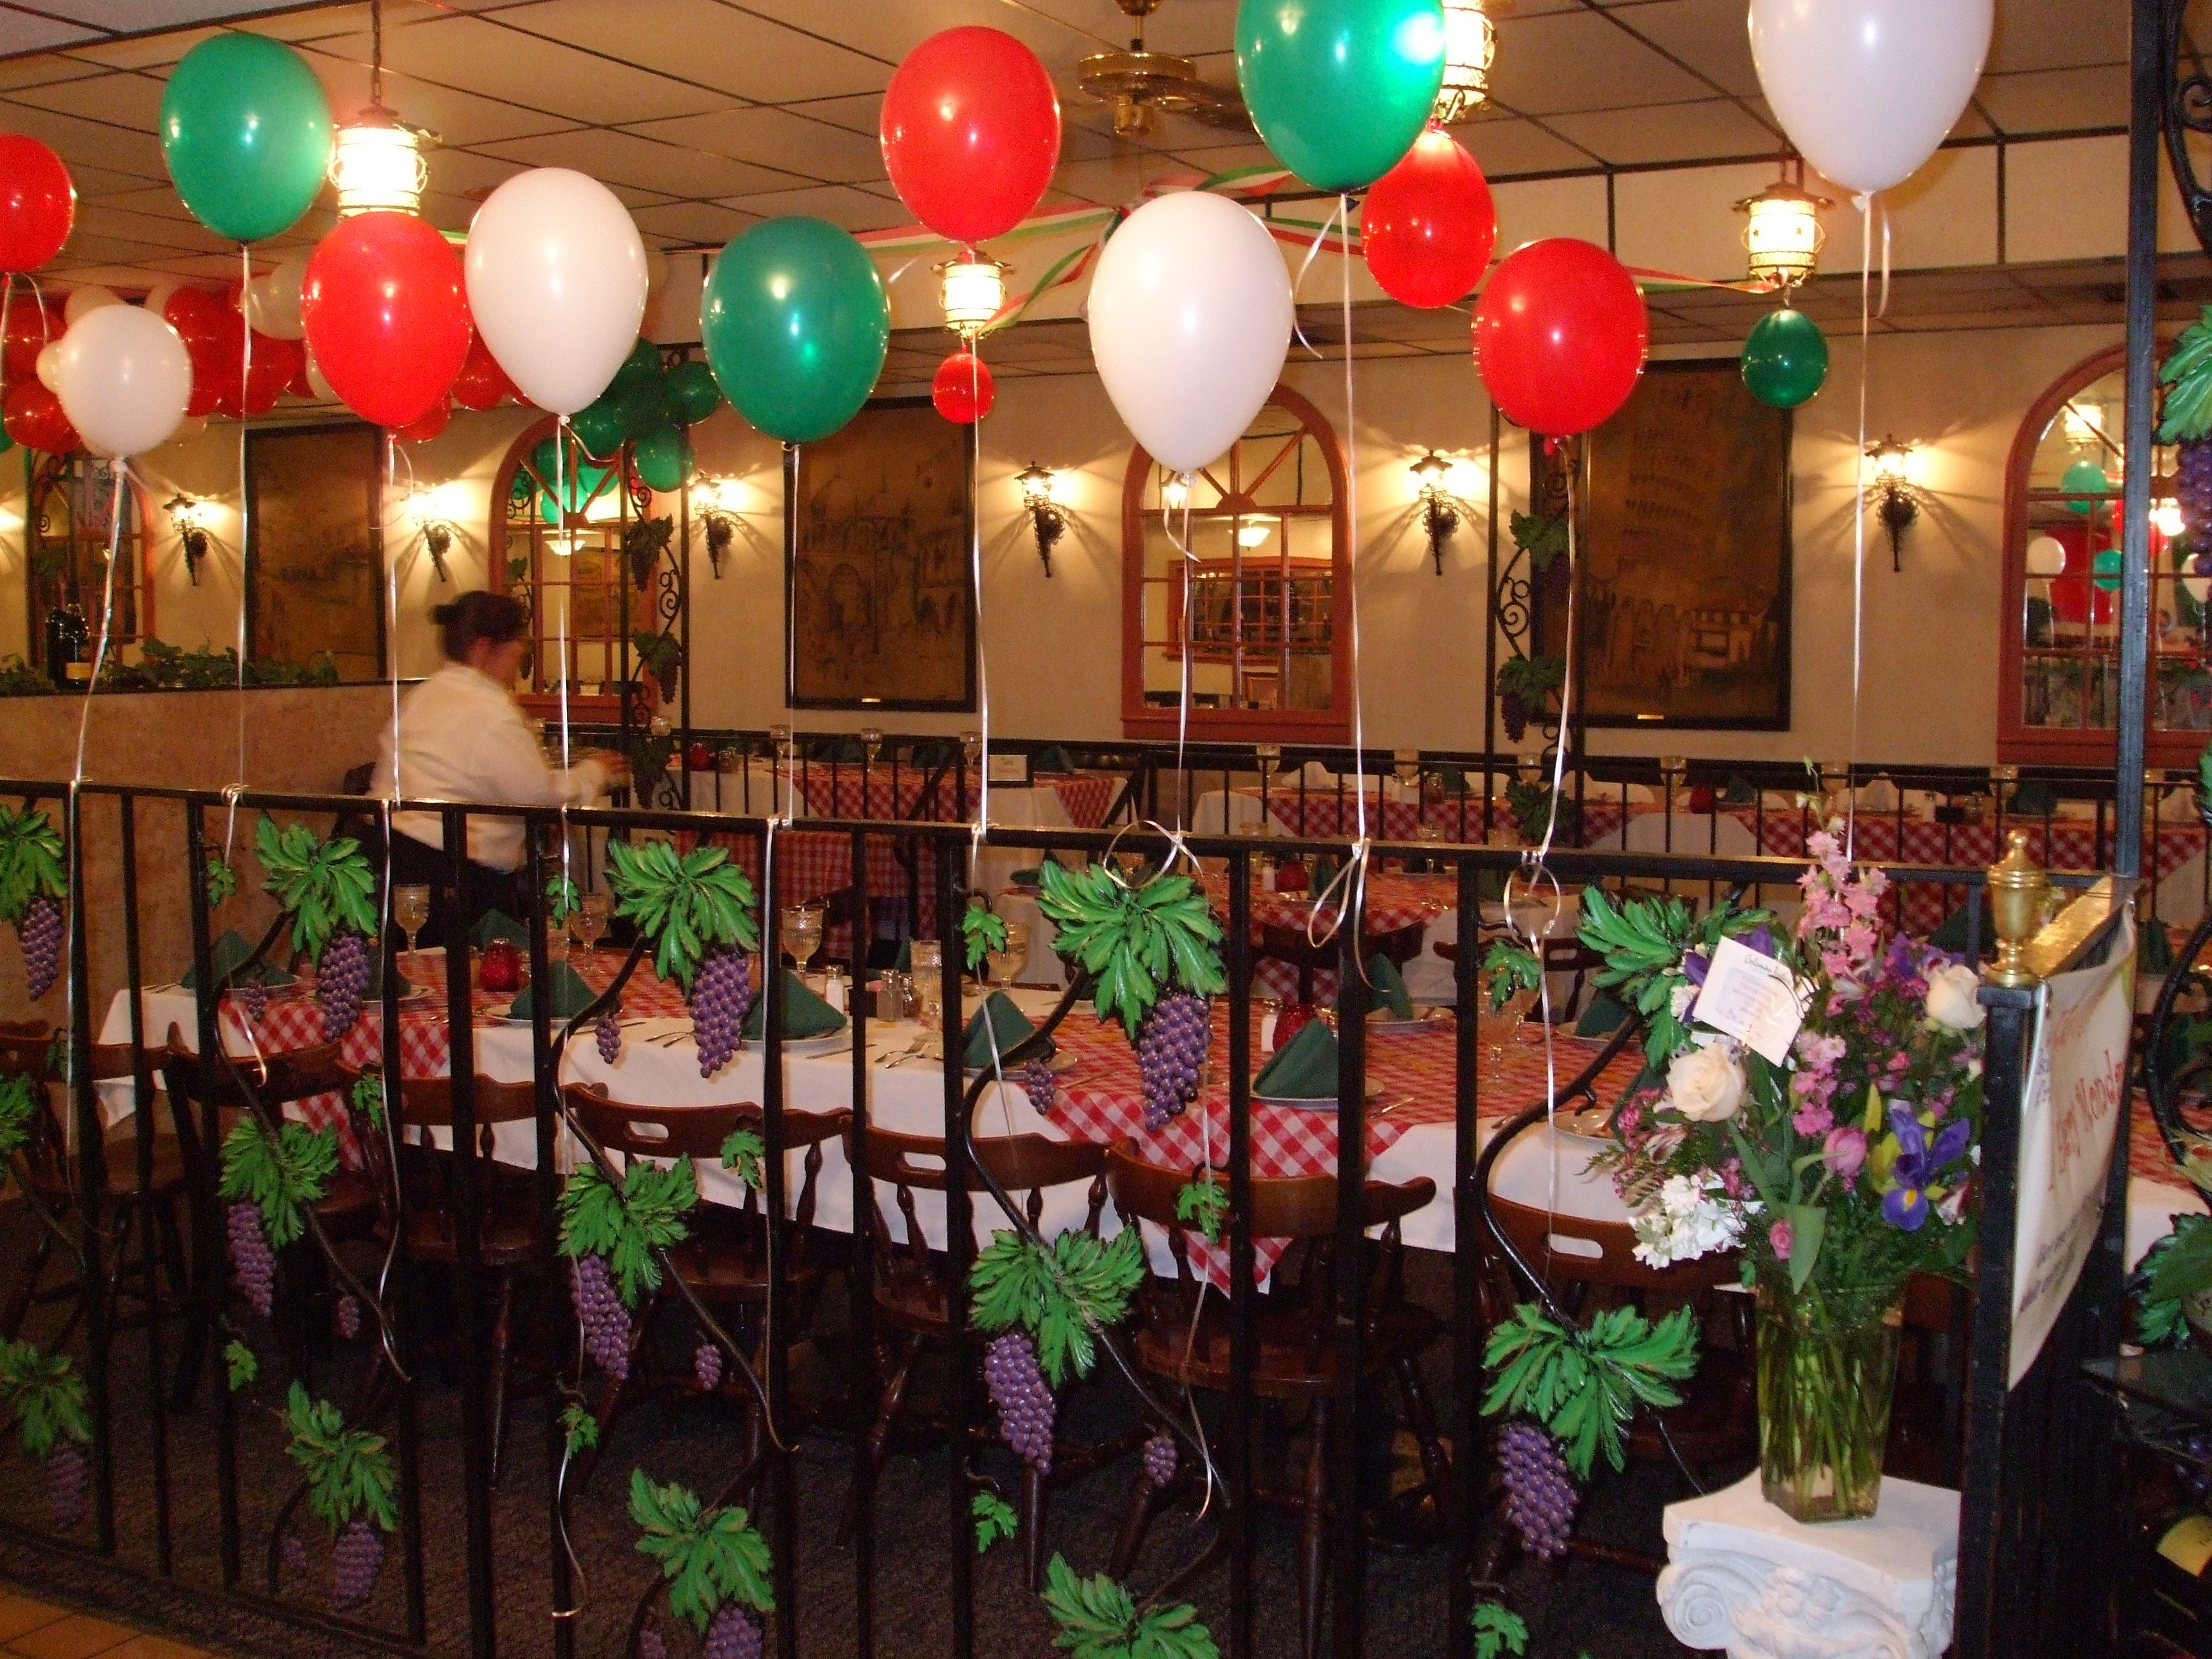 Best 25+ Italian themed parties ideas on Pinterest | Italian theme ...